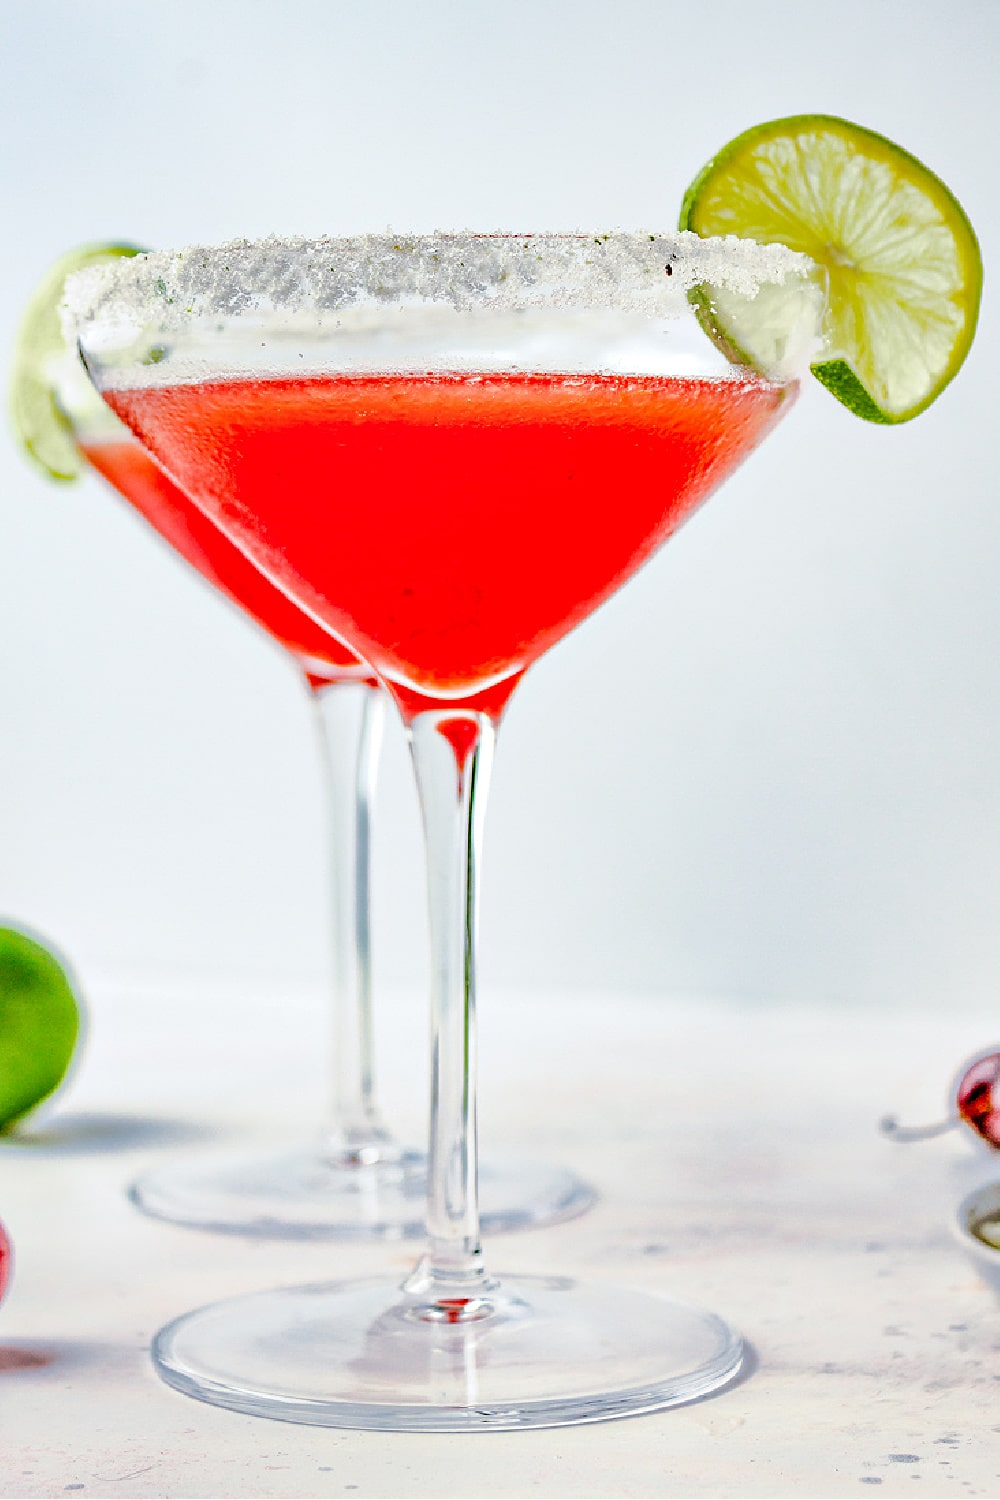 Two cocktail glasses with salt rims and Cherry Lime Margaritas garnished with lime slices